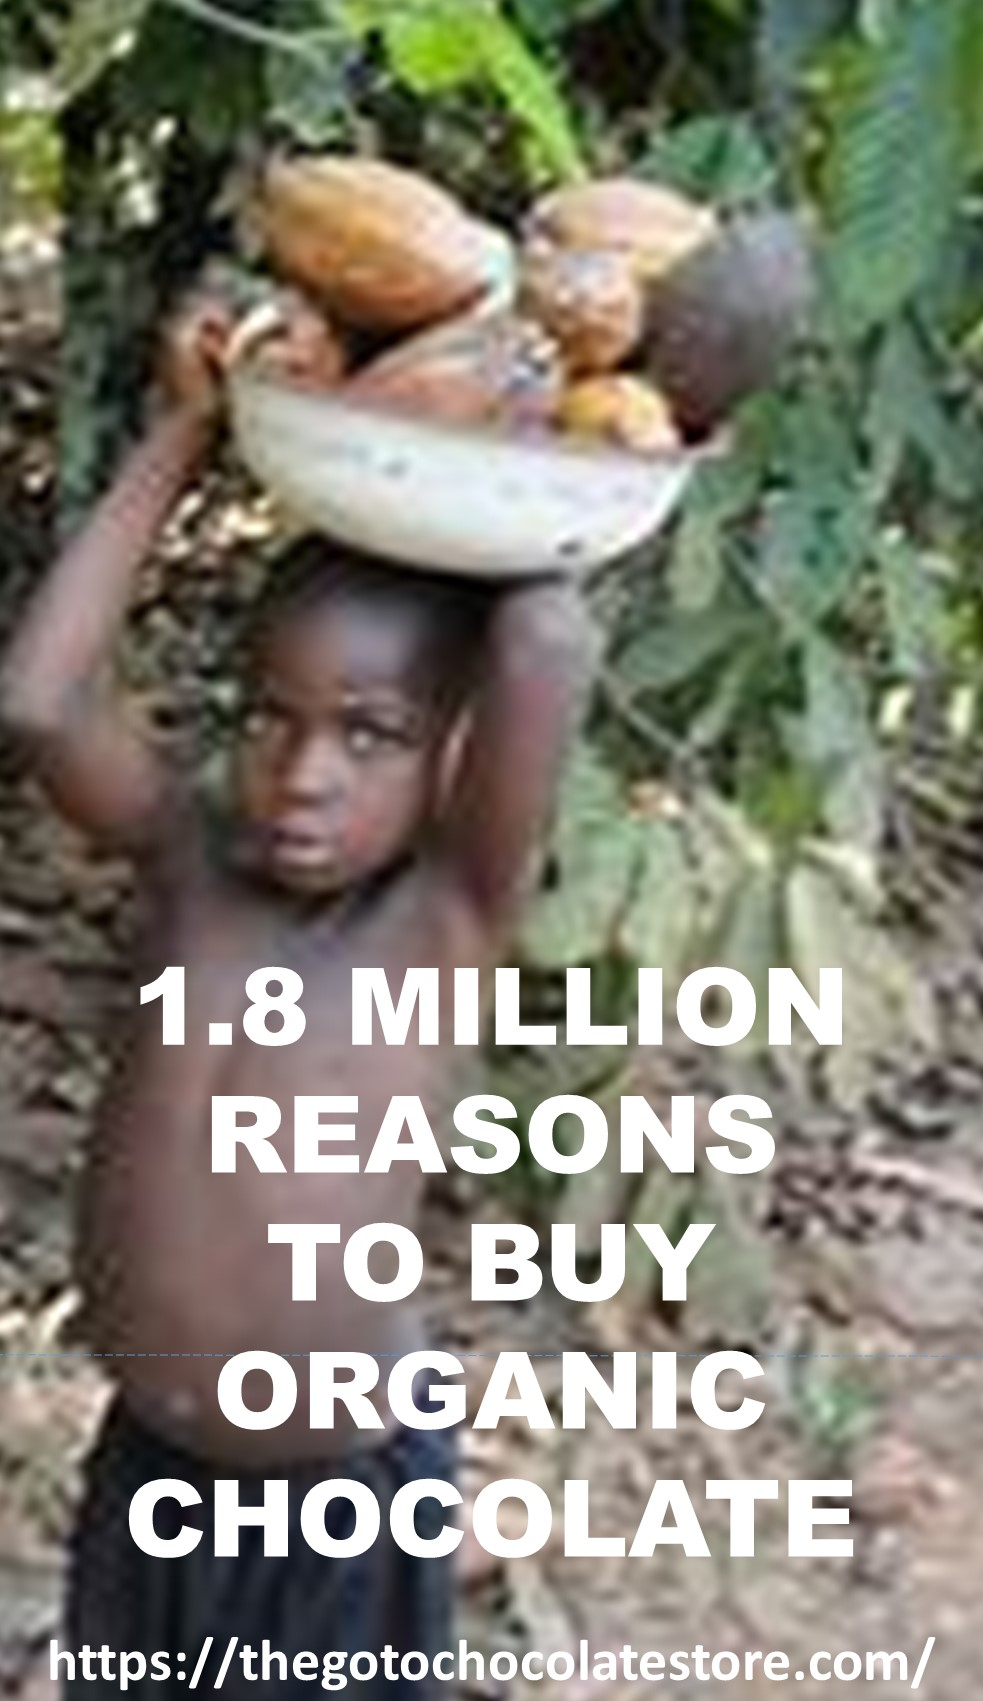 1.8 Million Reasons to Buy Organic Chocolate